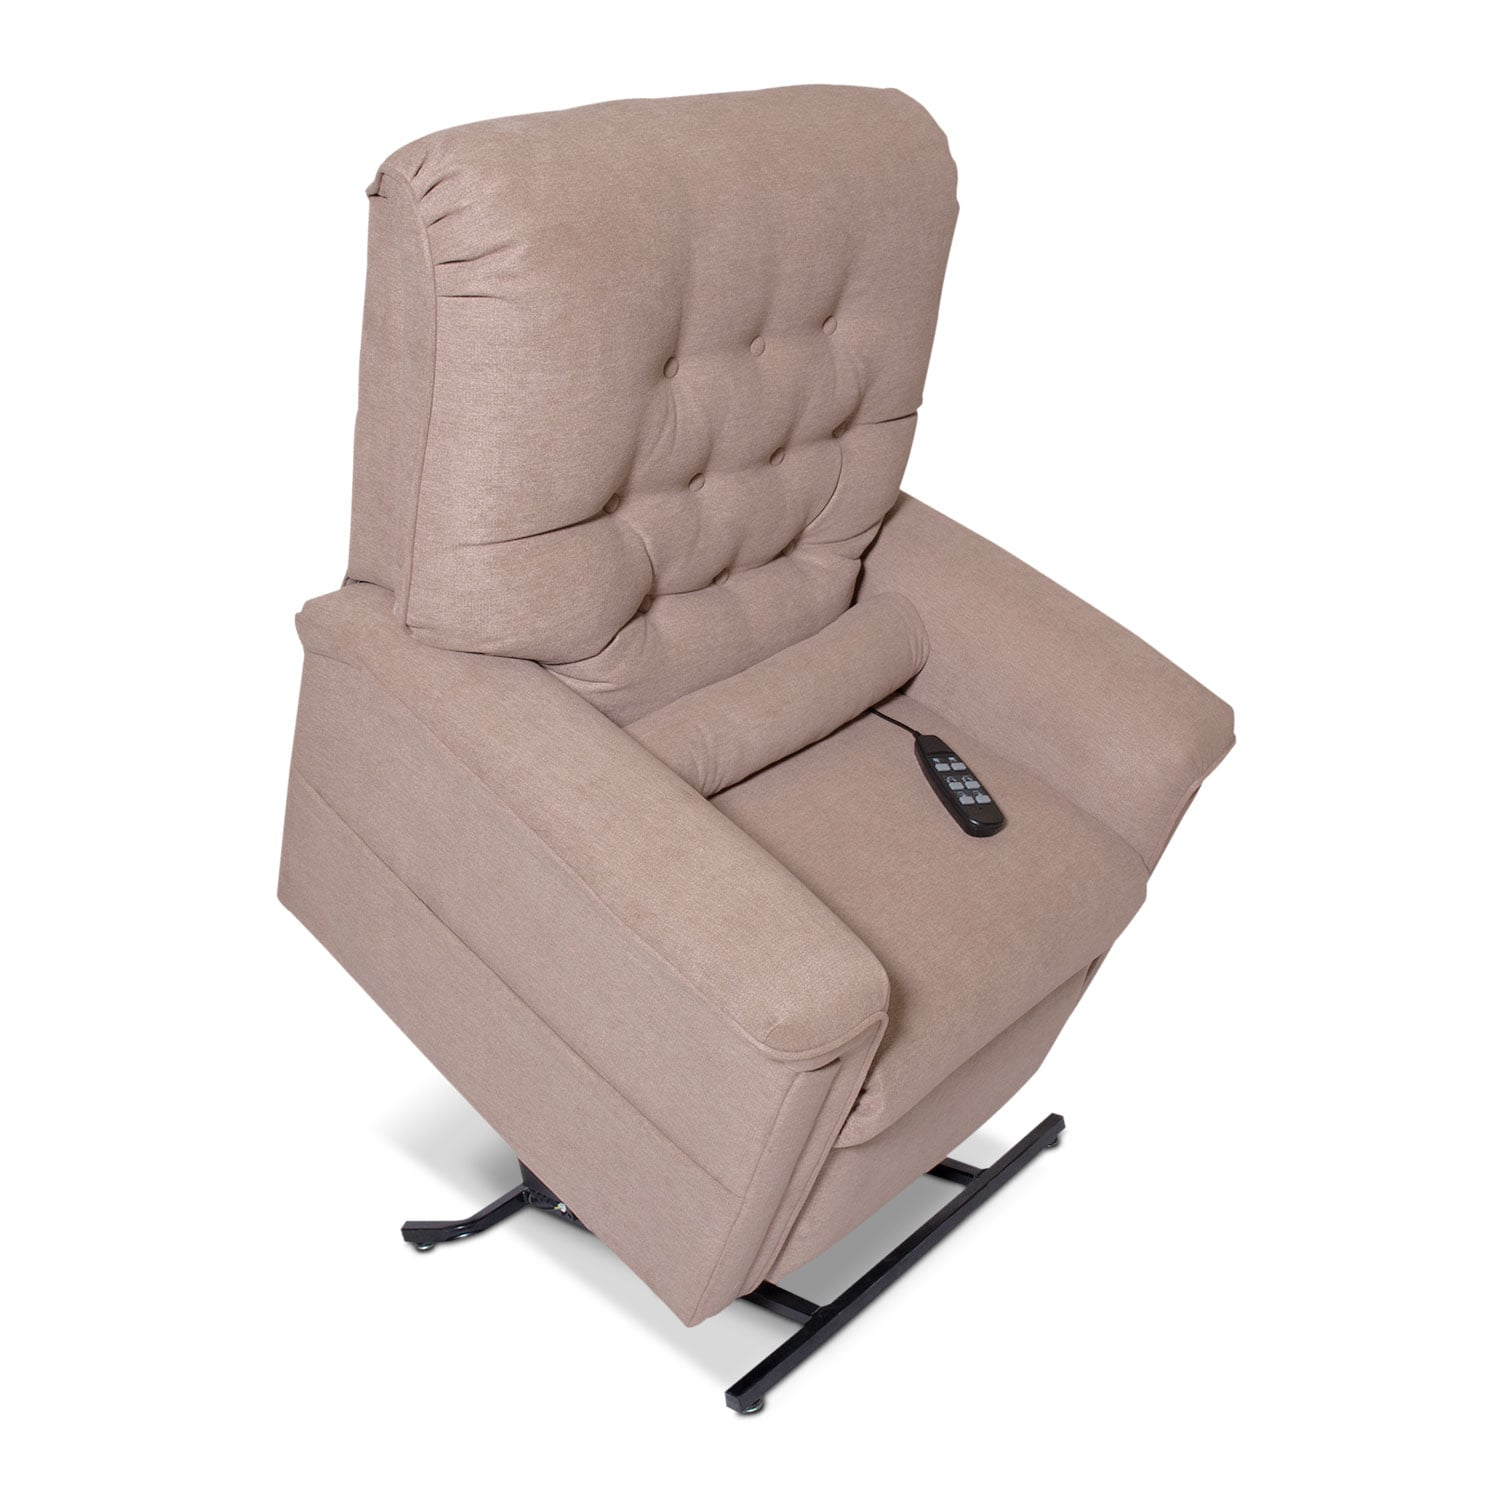 Marcy Lift Chair - Beige